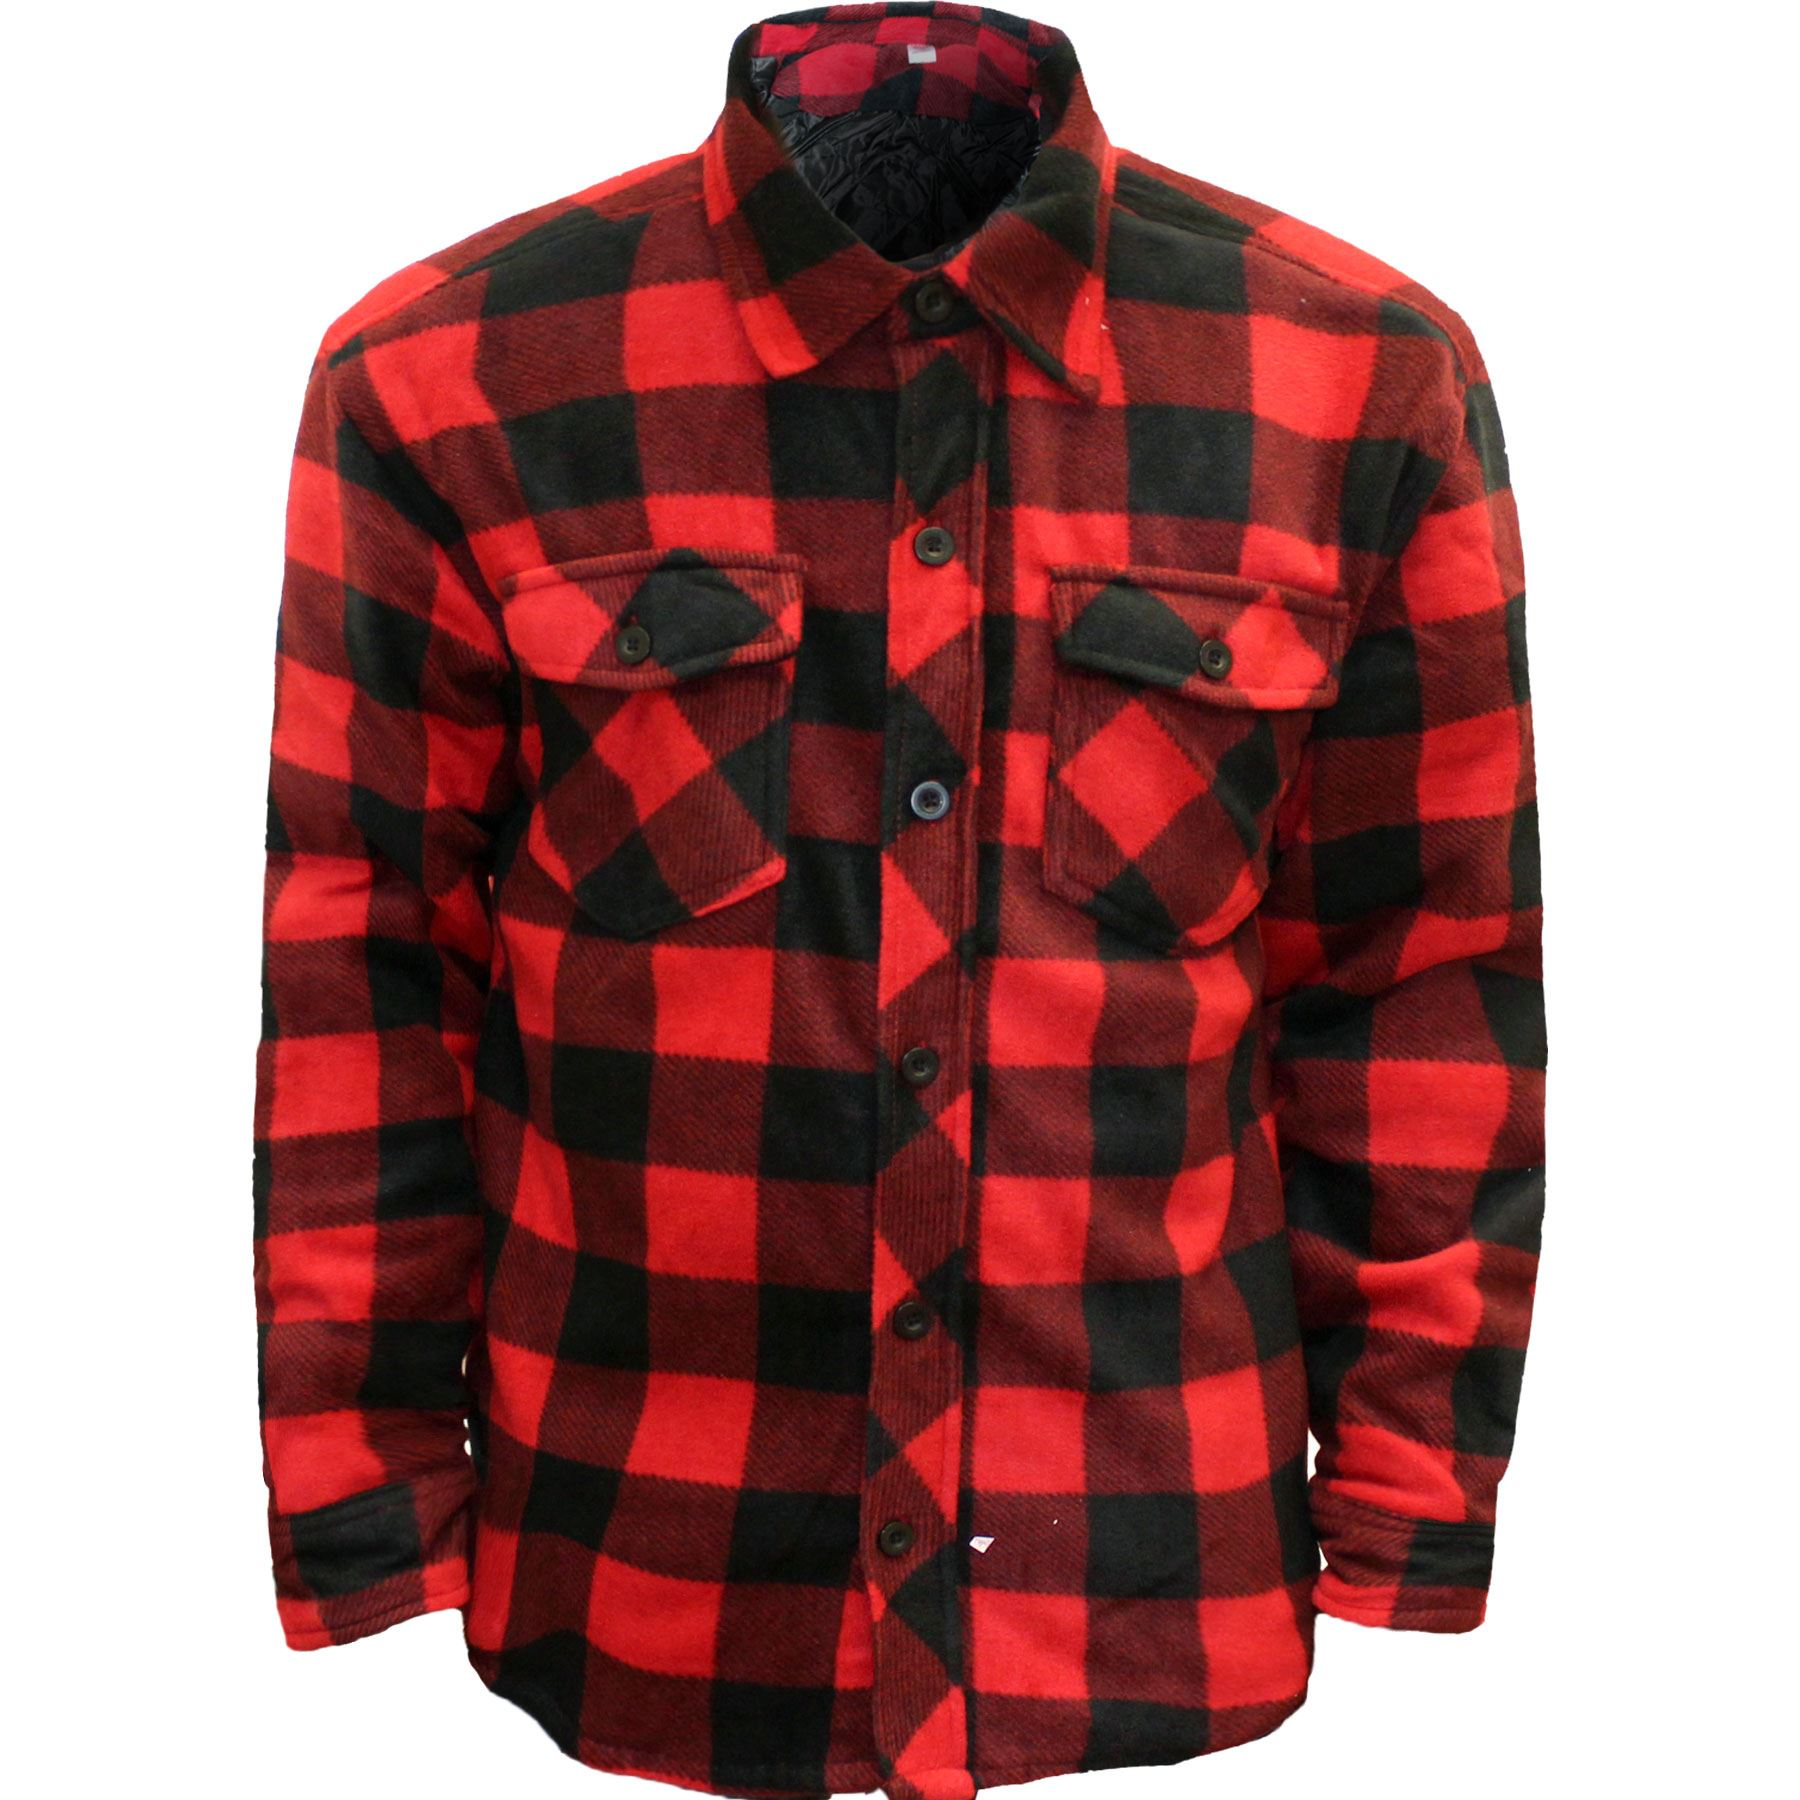 New mens thick padded quilted check lumberjack shirt warm for Mens padded lumberjack shirt